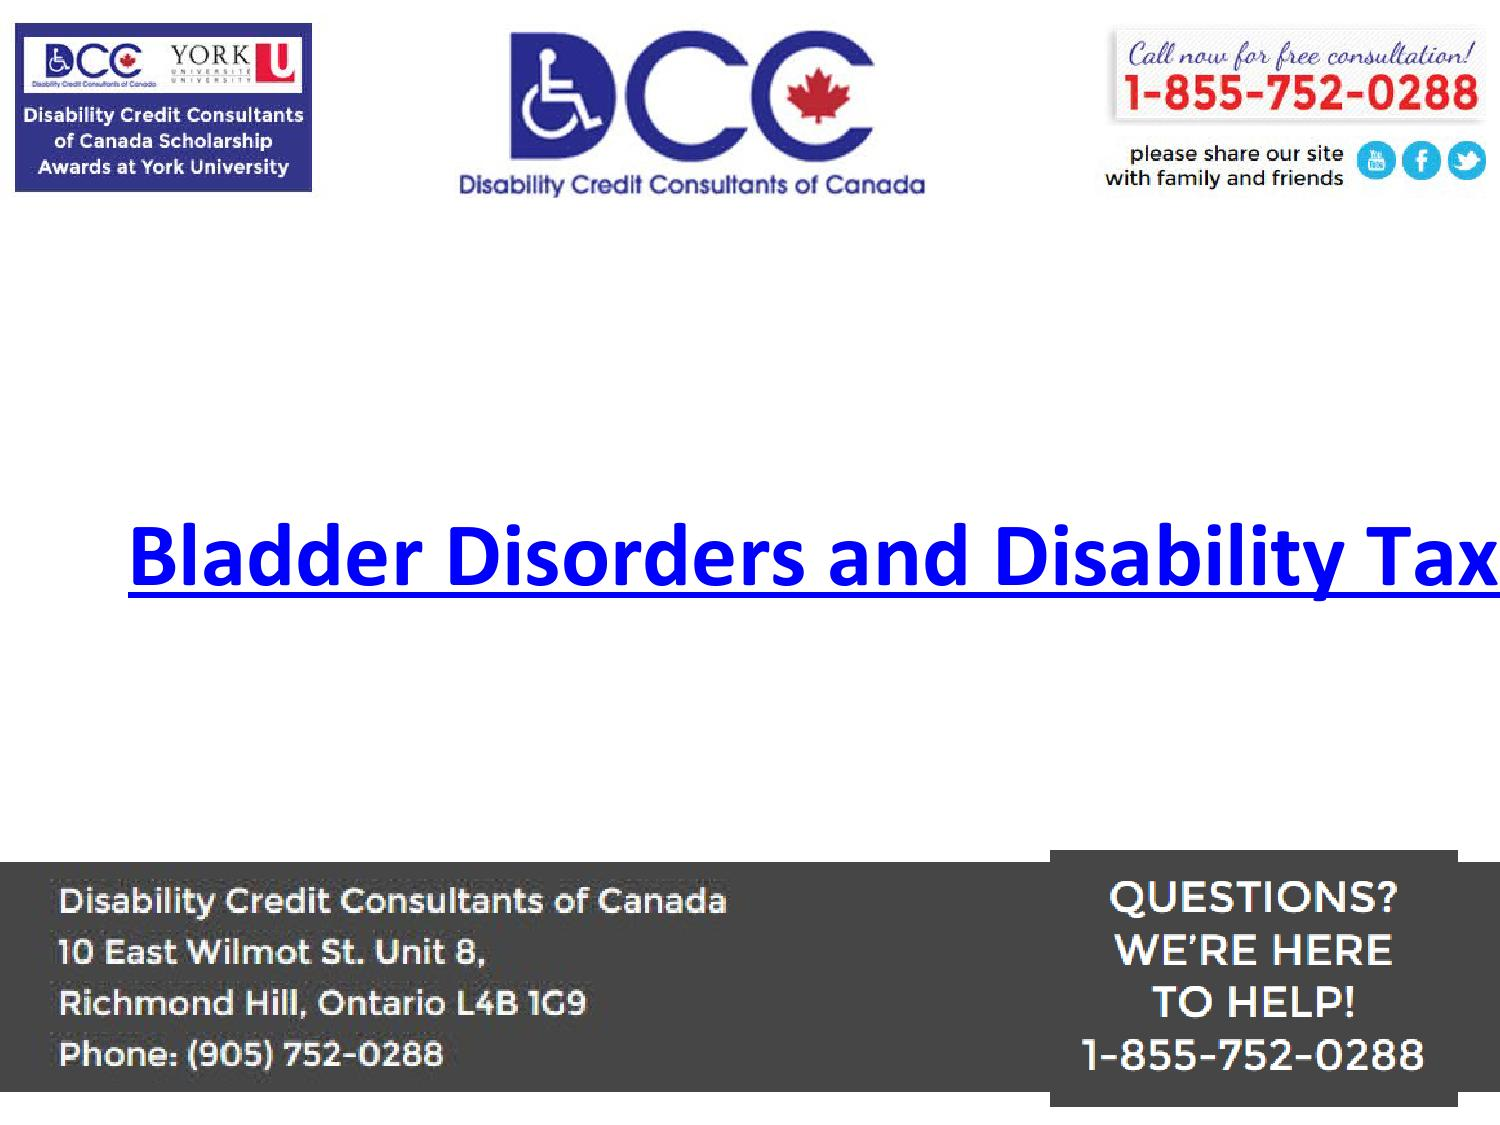 Bladder Disorders Is A Disease That Included In Canadian Disabilities Tax Credits List